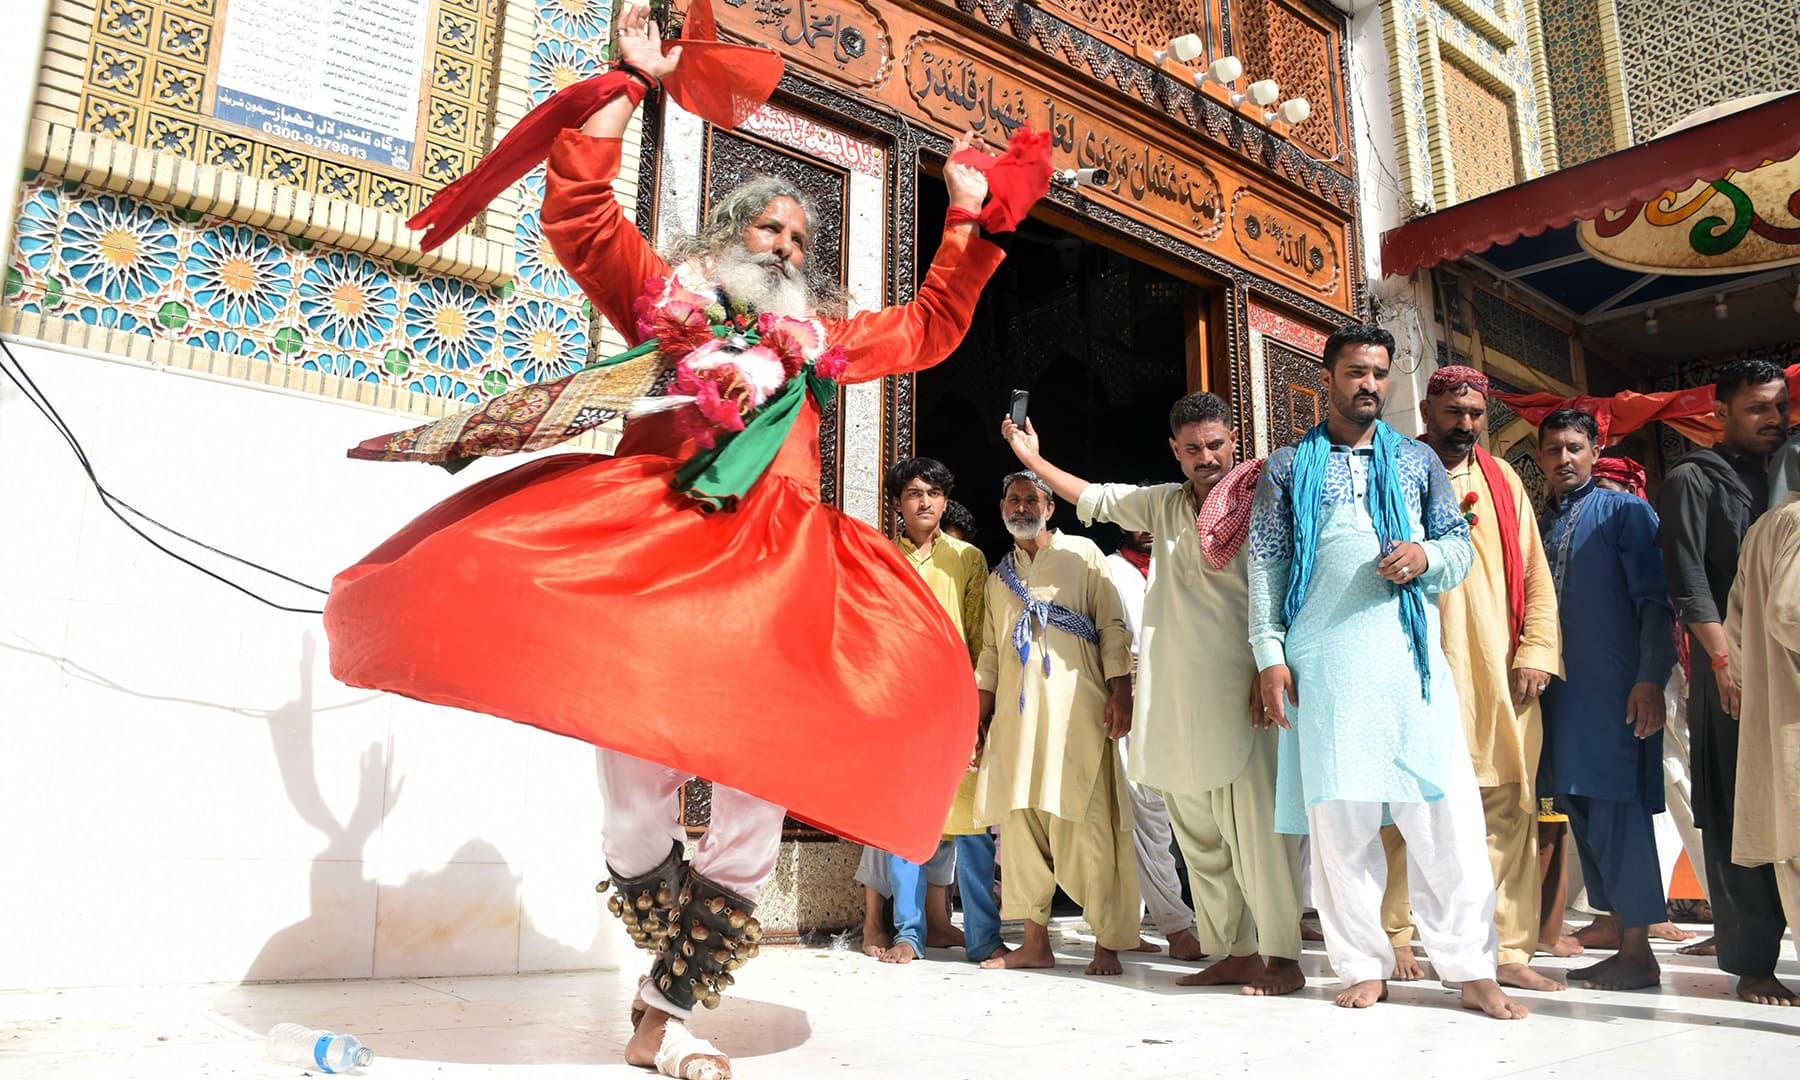 An elderly devotee with a pair of anklets fitted with bells performs a Sufi dance at the main entrance of the shrine.